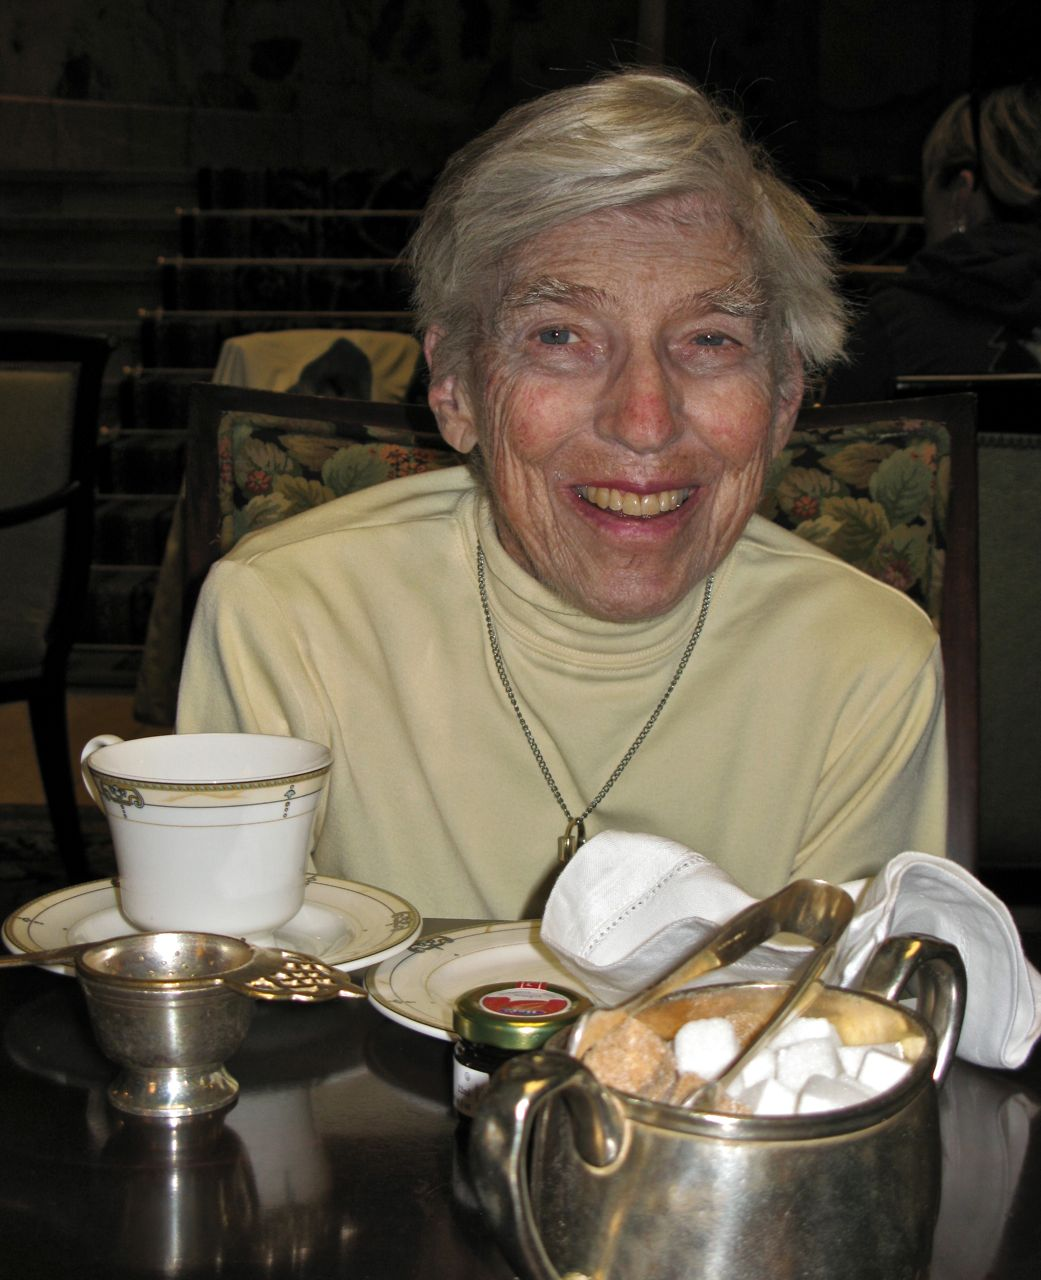 Mom, celebrating her 79th birthday with high tea at Denver's Brown Palace Hotel